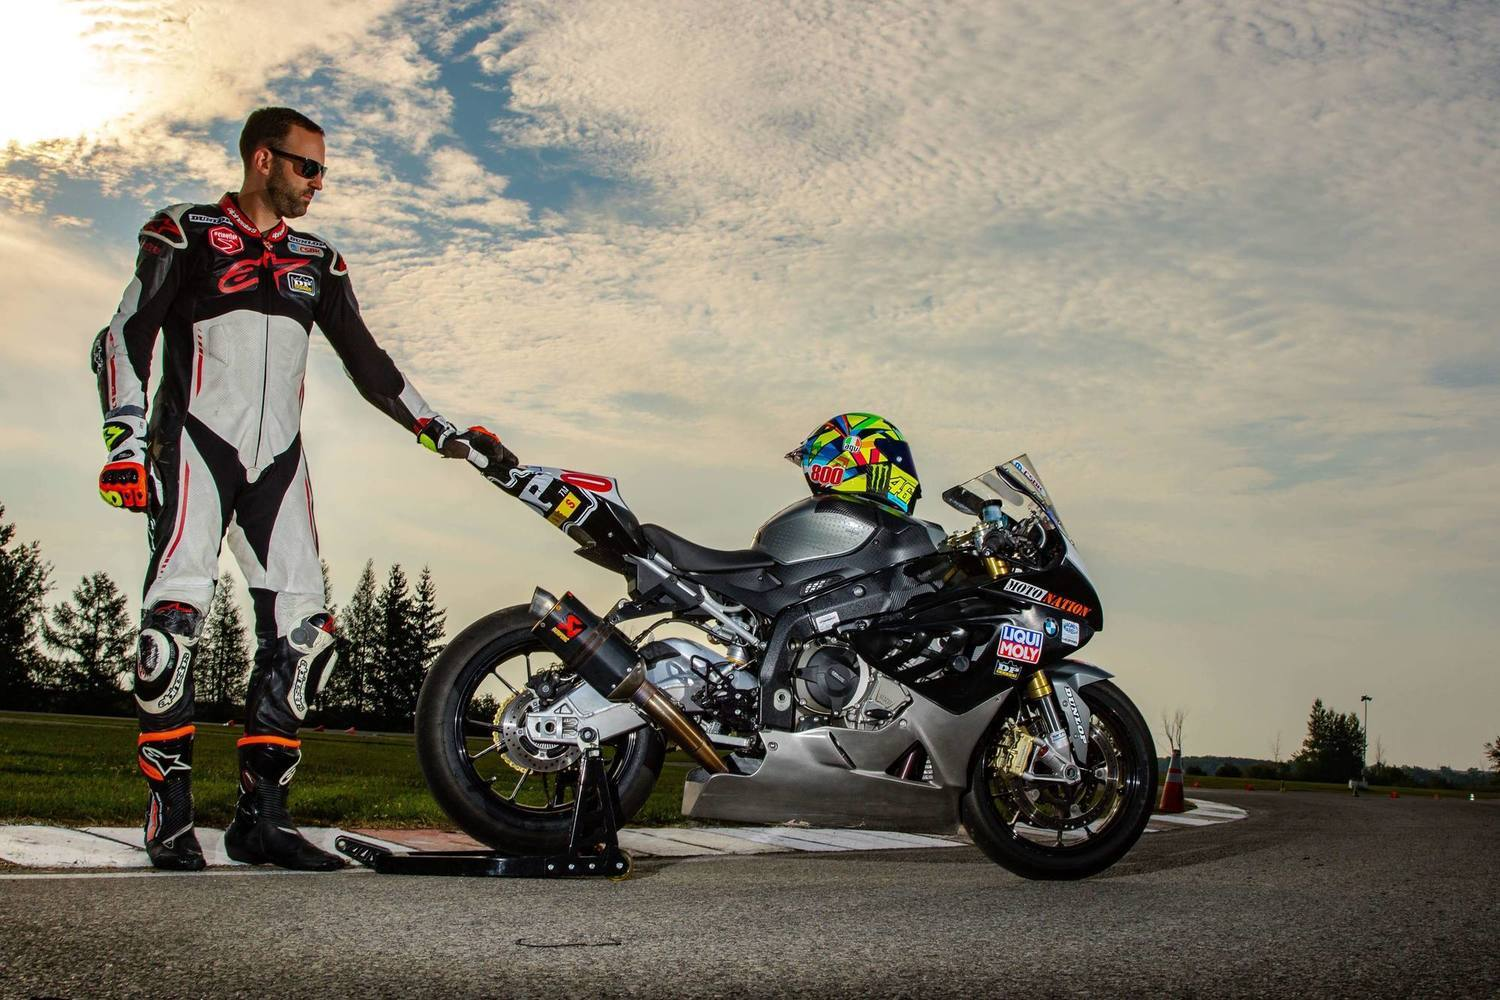 2013 BMW S 1000 RR | Picture 2811288 motorcycle photo